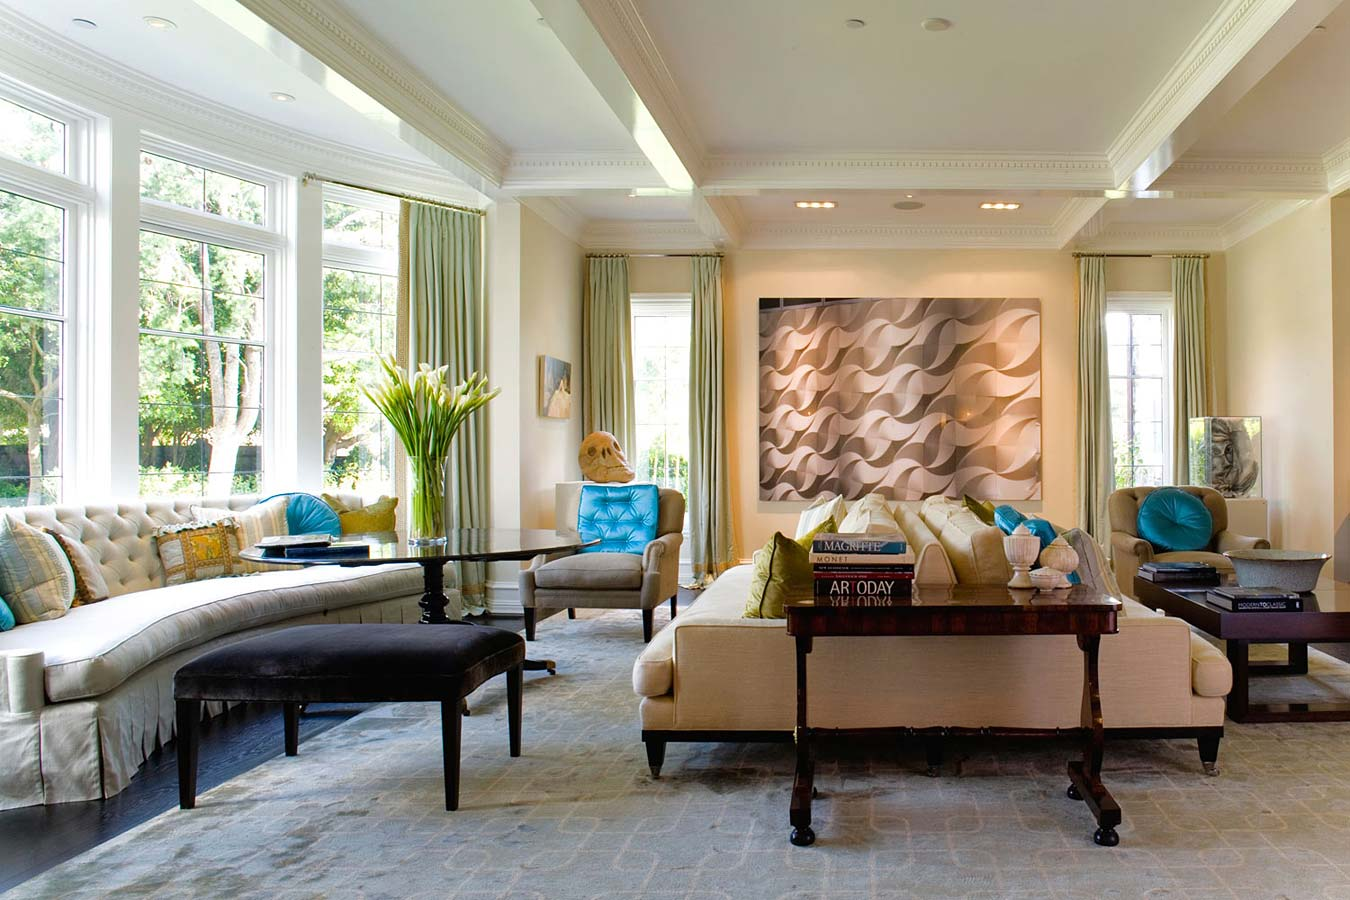 splendid sass windsor smith interior design